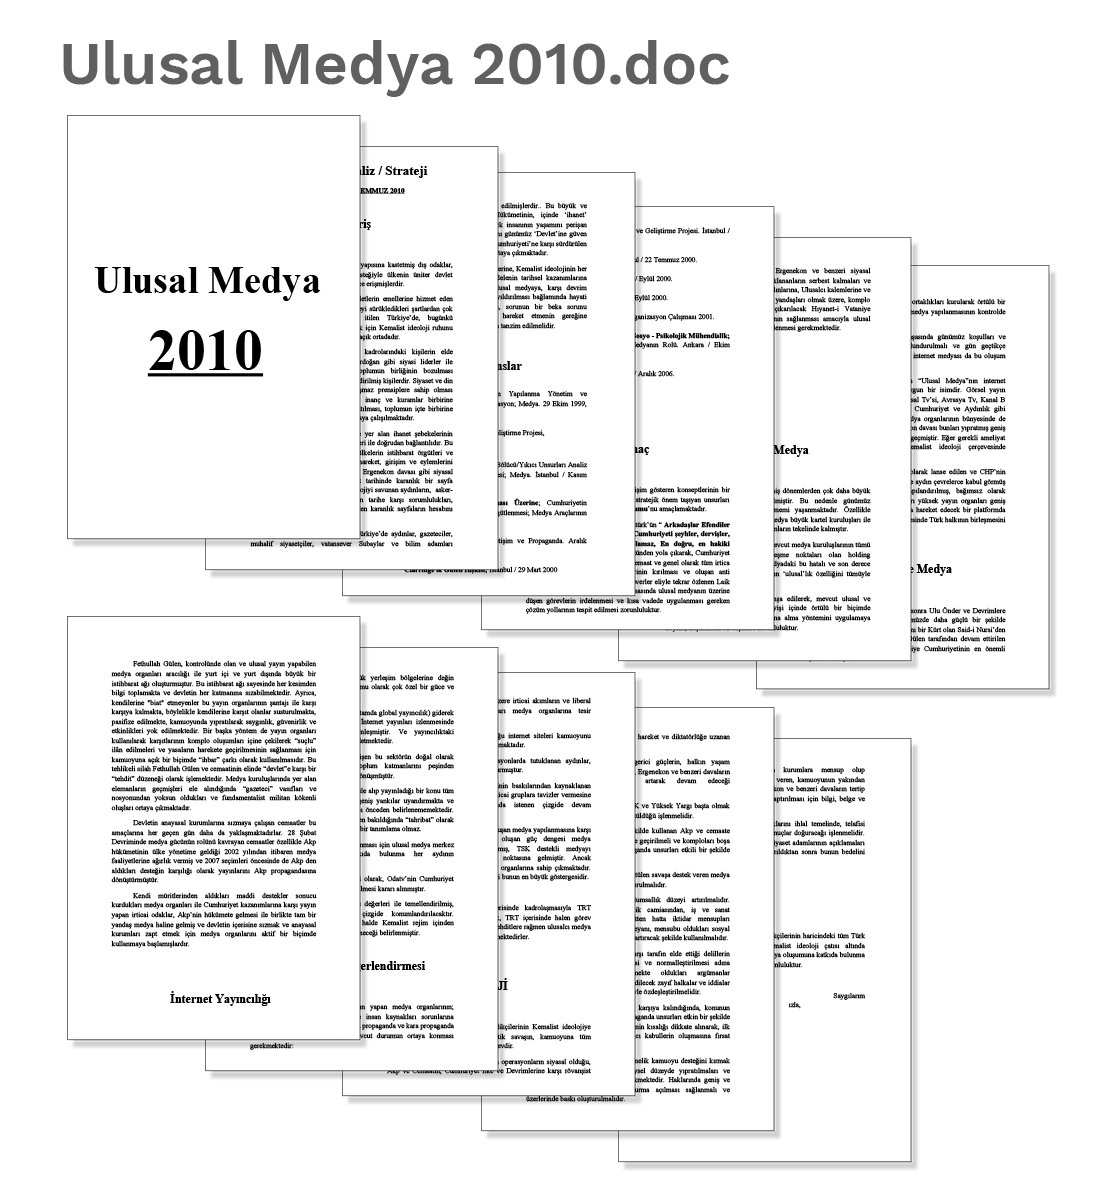 Document 10: Ulusal Medya 2010.doc